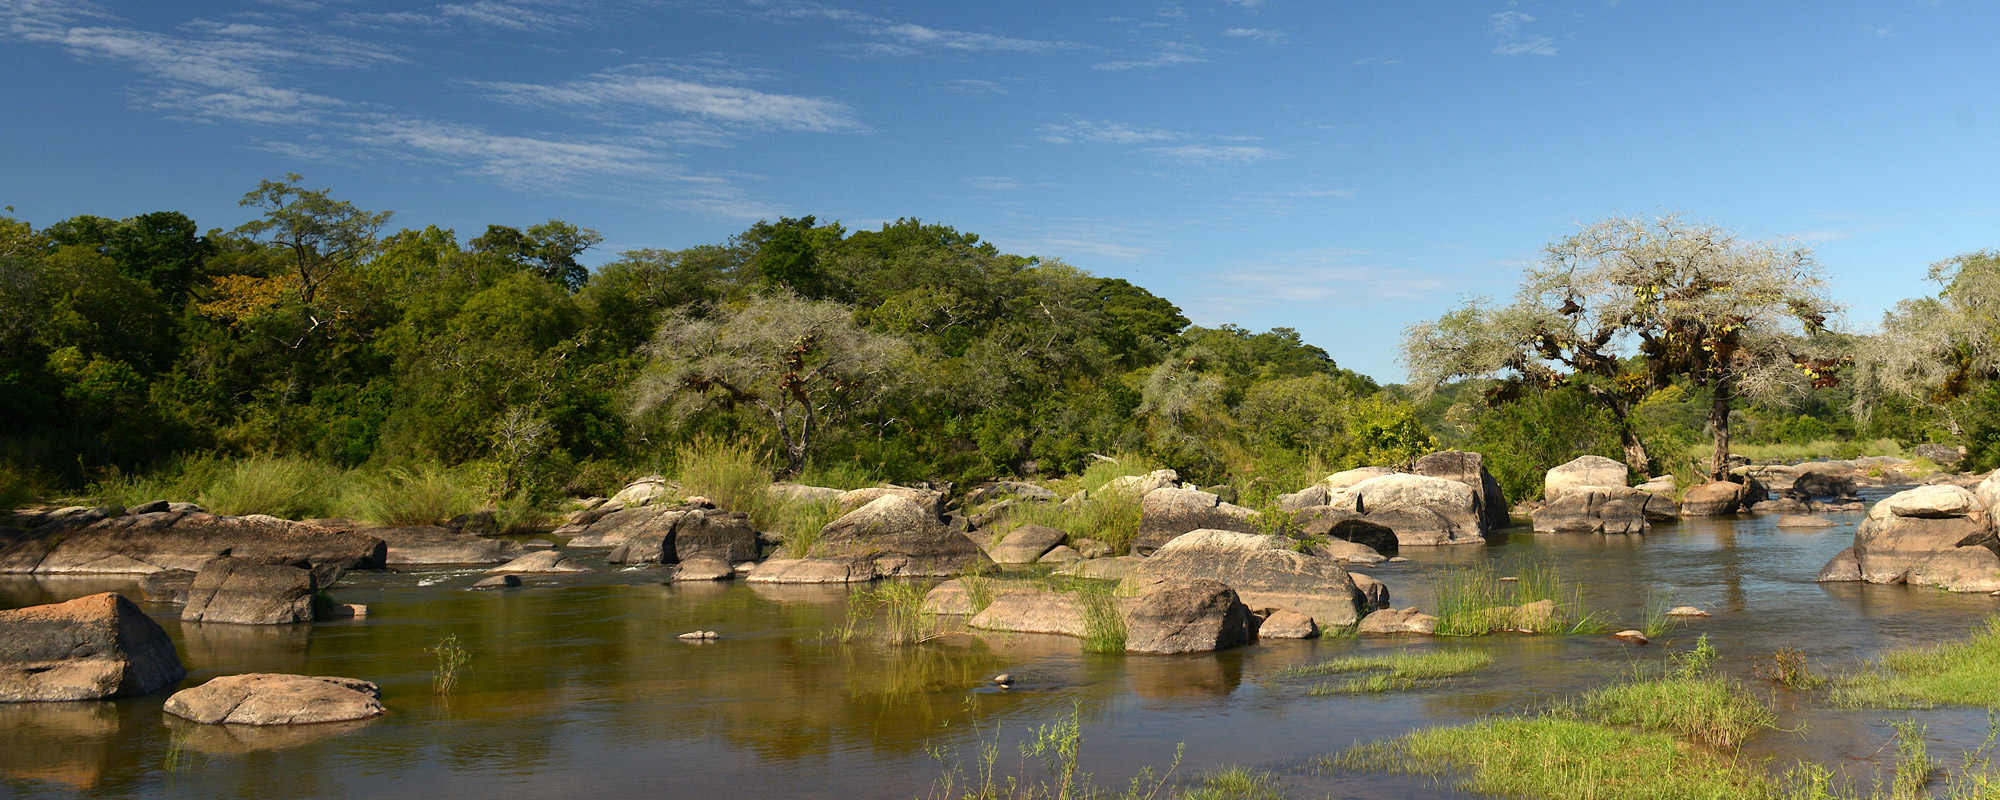 Nkhotakota - Tongole Wilderness Lodge